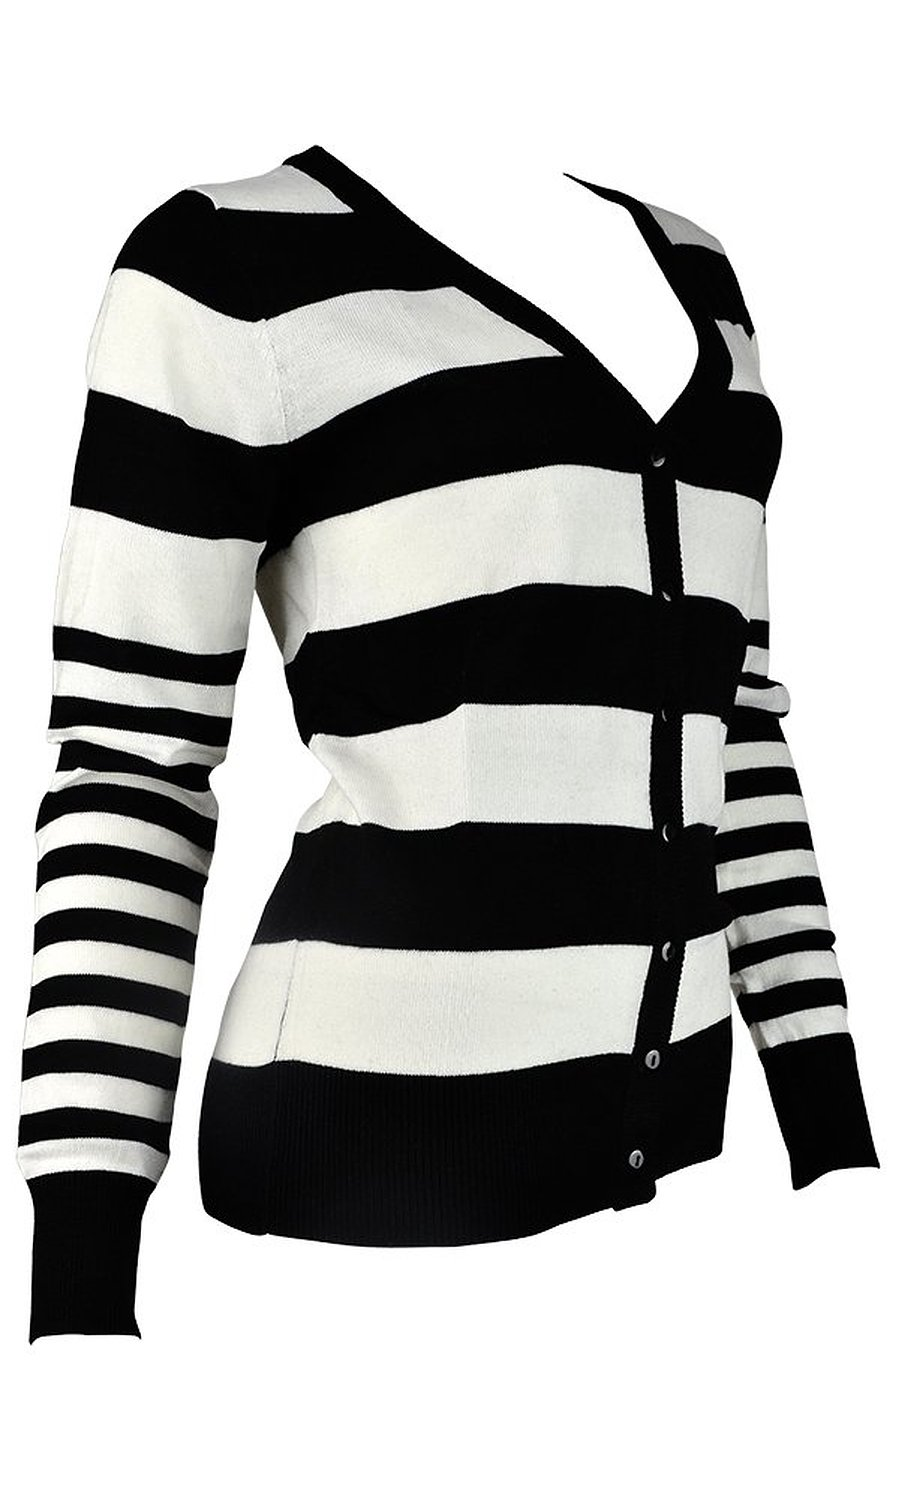 Fappac Women's Wool Blend Buttoned Striped Cardigan Sweater at Amazon Women's Clothing store: